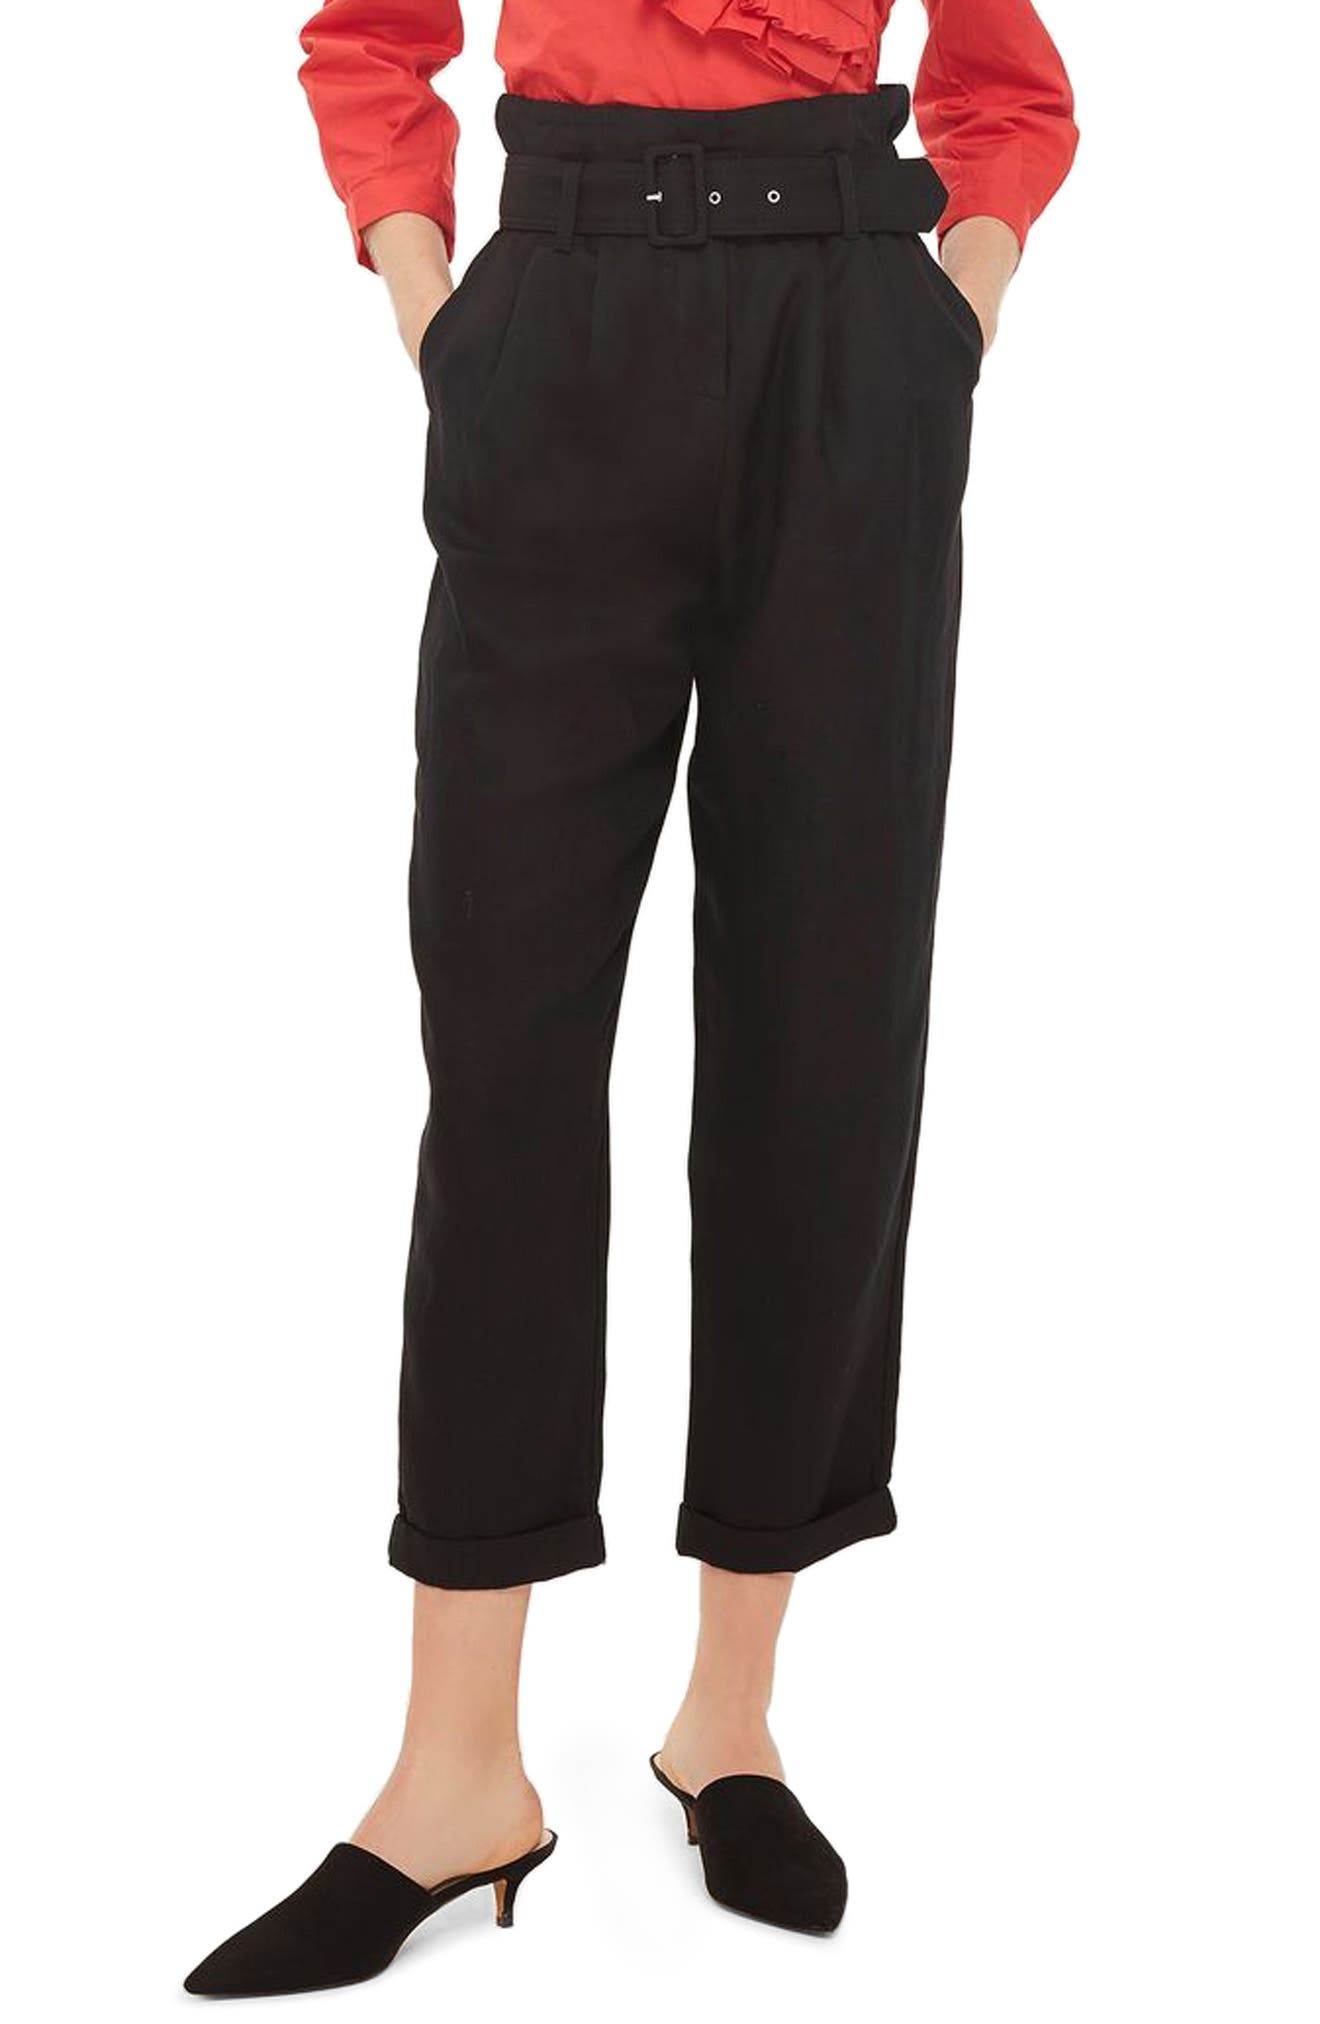 Mensy Belted Trousers,                             Main thumbnail 1, color,